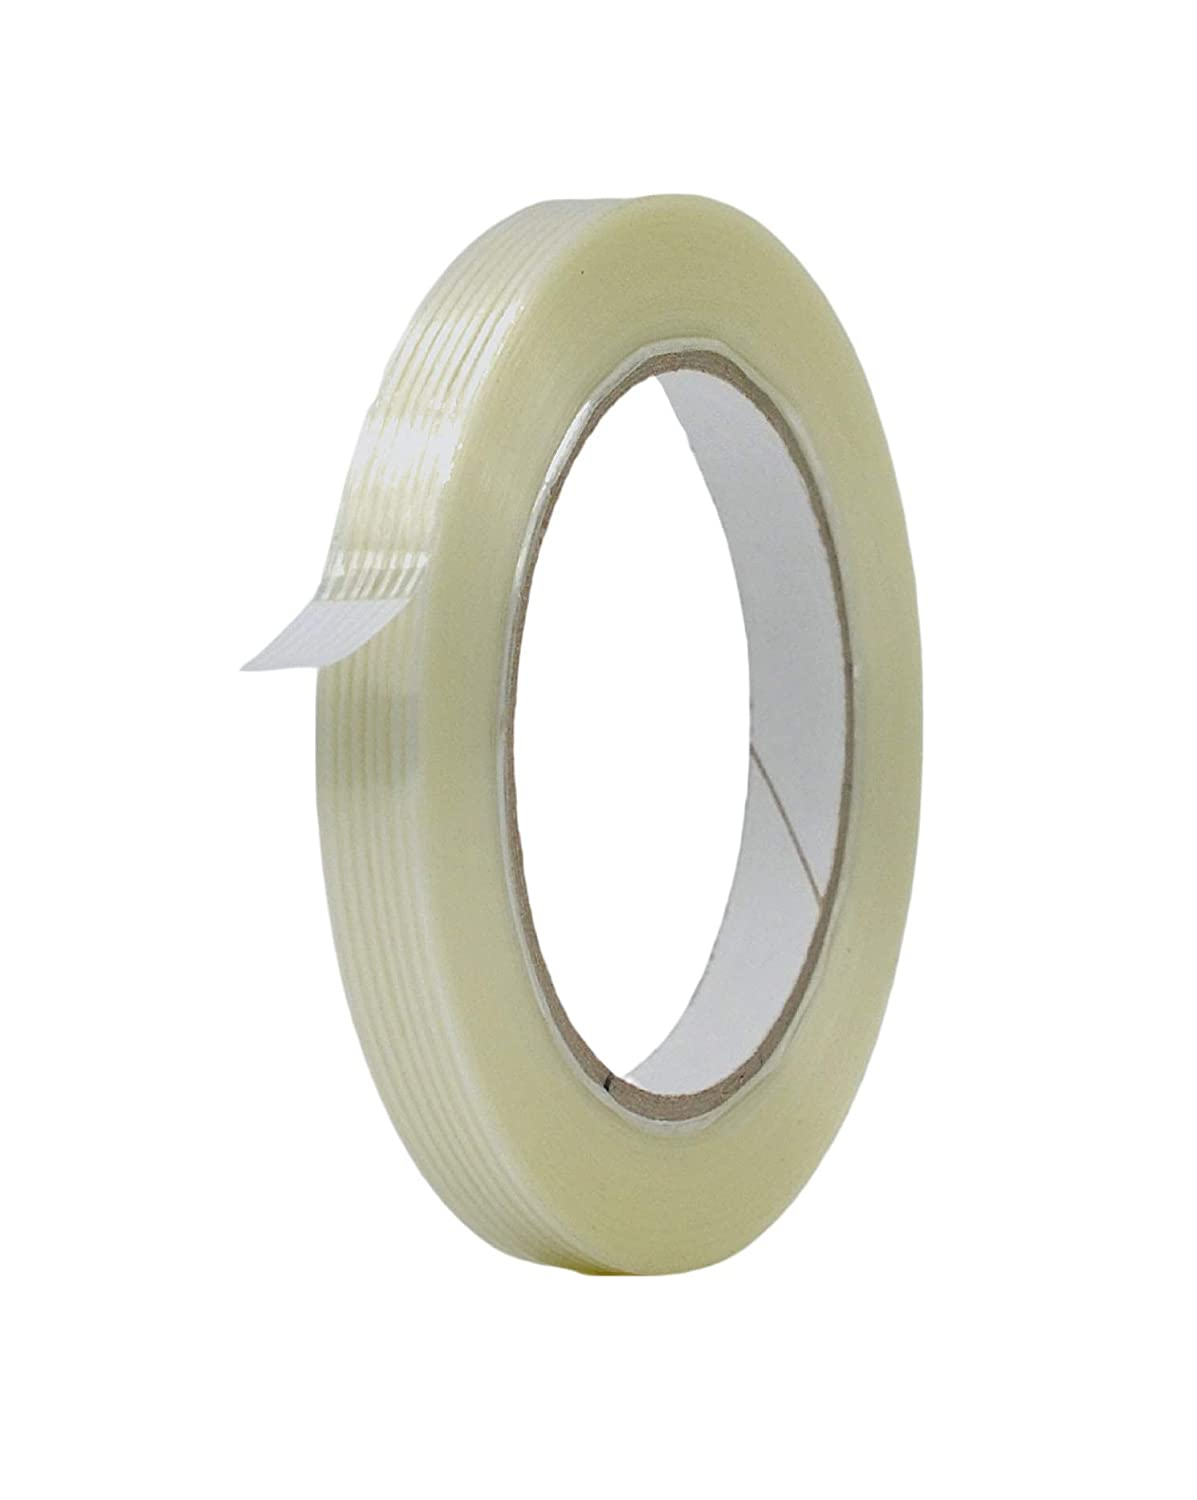 MAT Commodity Grade Fiberglass Reinforced Filament Strapping Tape - 1/2 in.  Wide x 60 yds. (Pack of 1) Filaments Run Lengthwise: Amazon.in: Office  Products